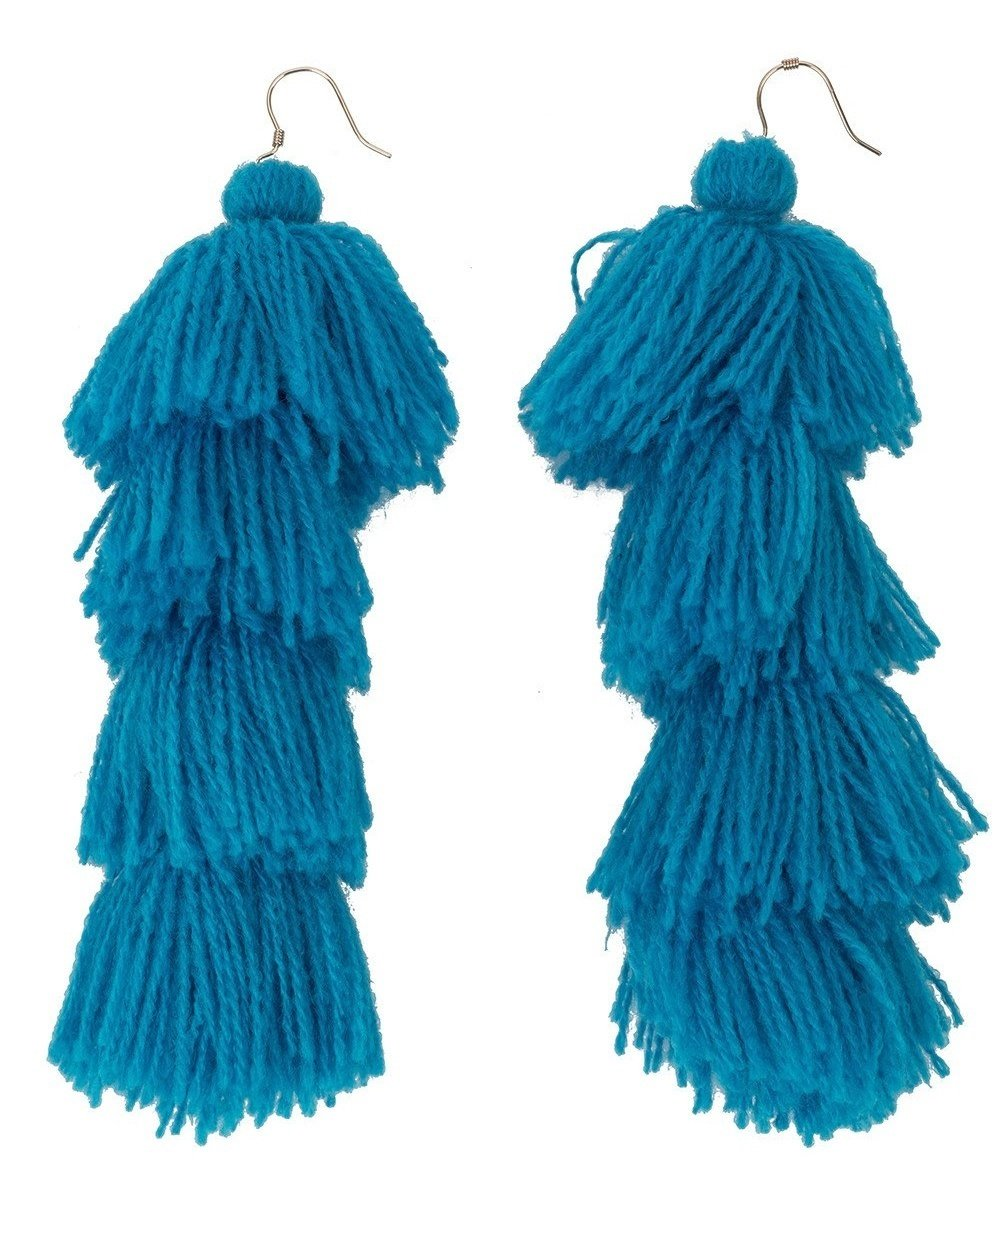 Diy Tassel Earrings The Shopping Bag